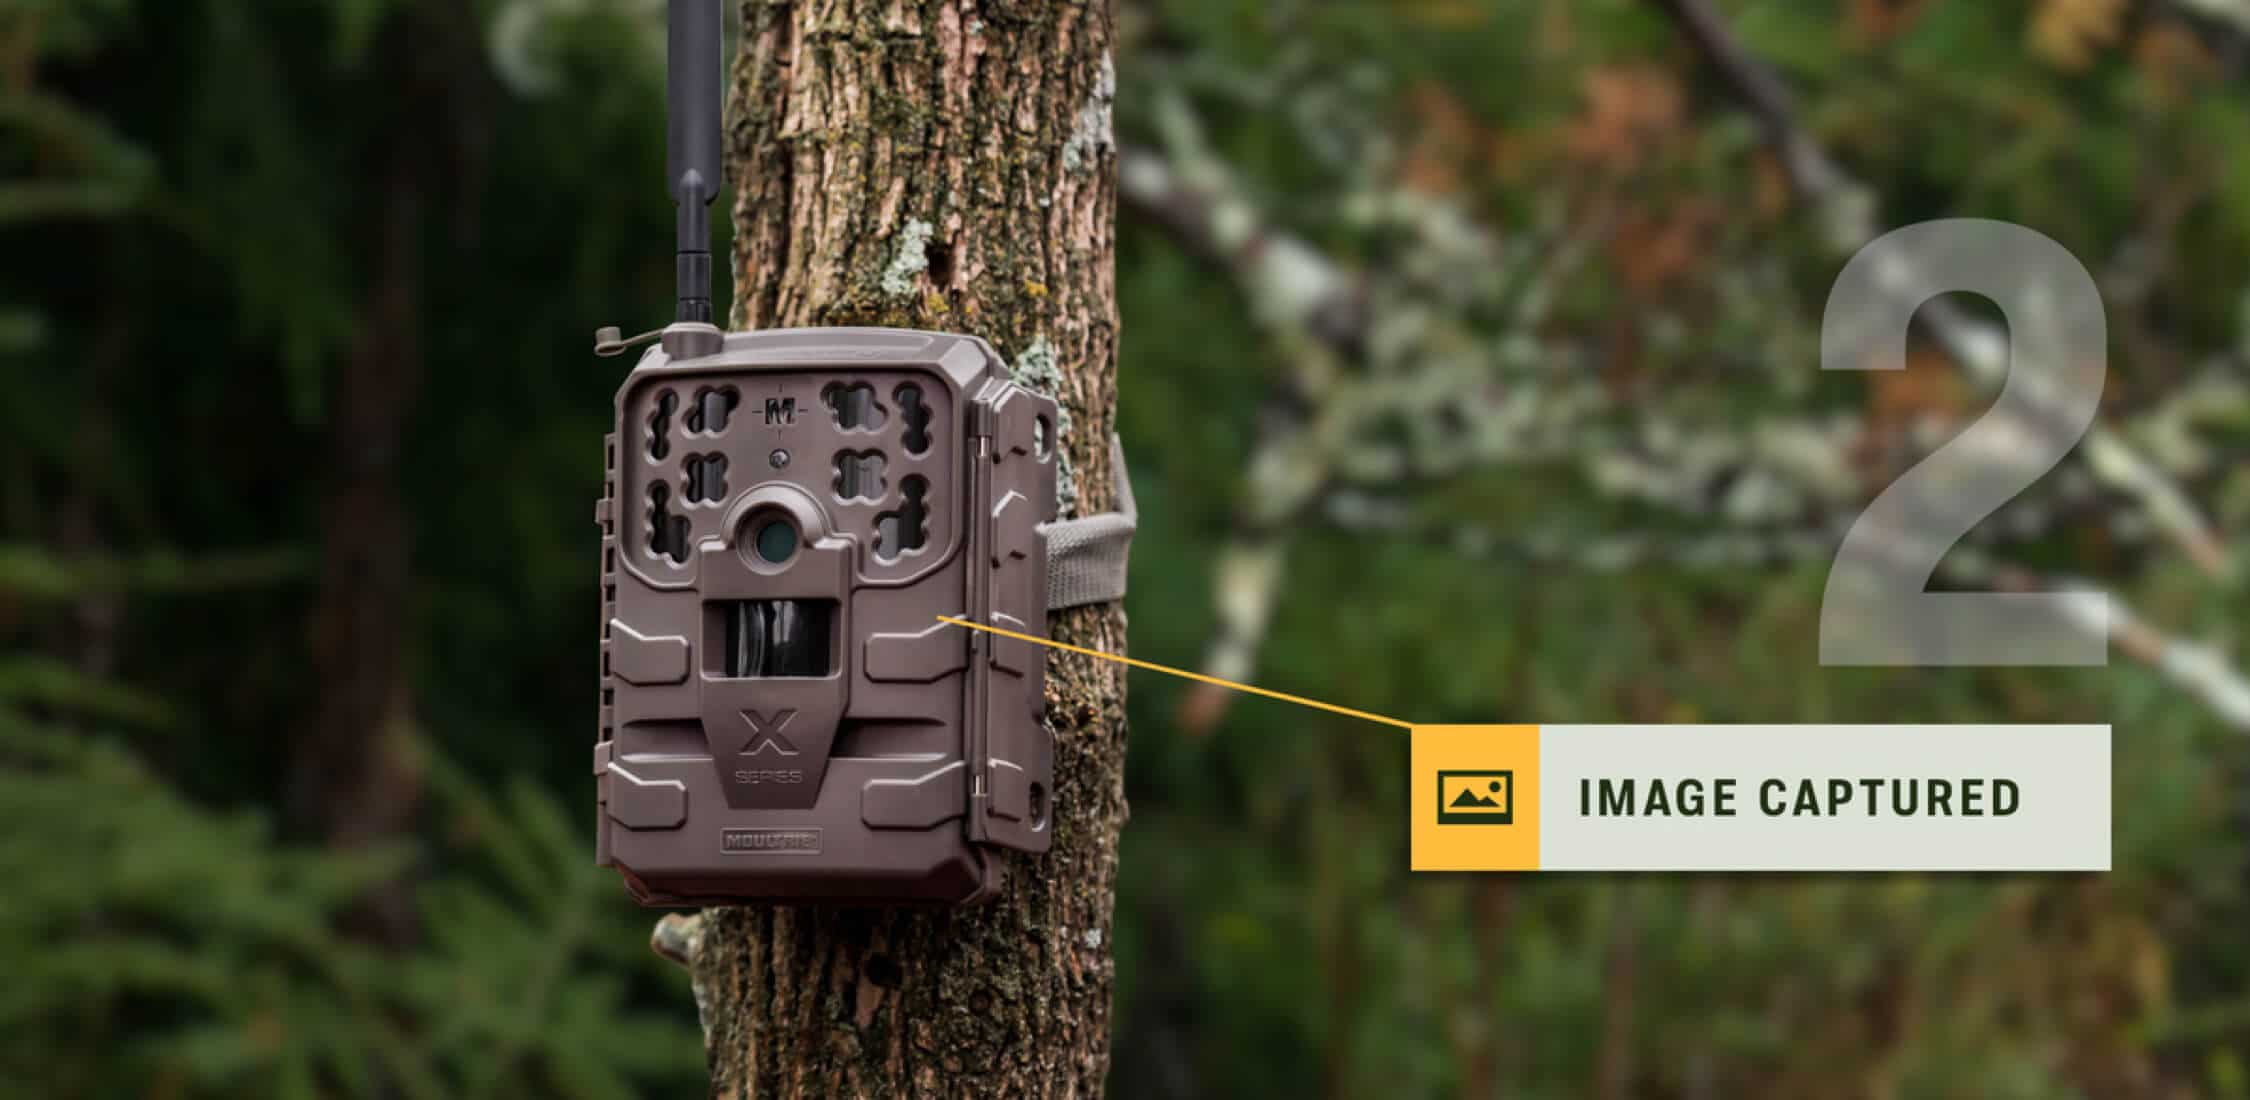 Moultrie Cellular Trail Camera capturing image